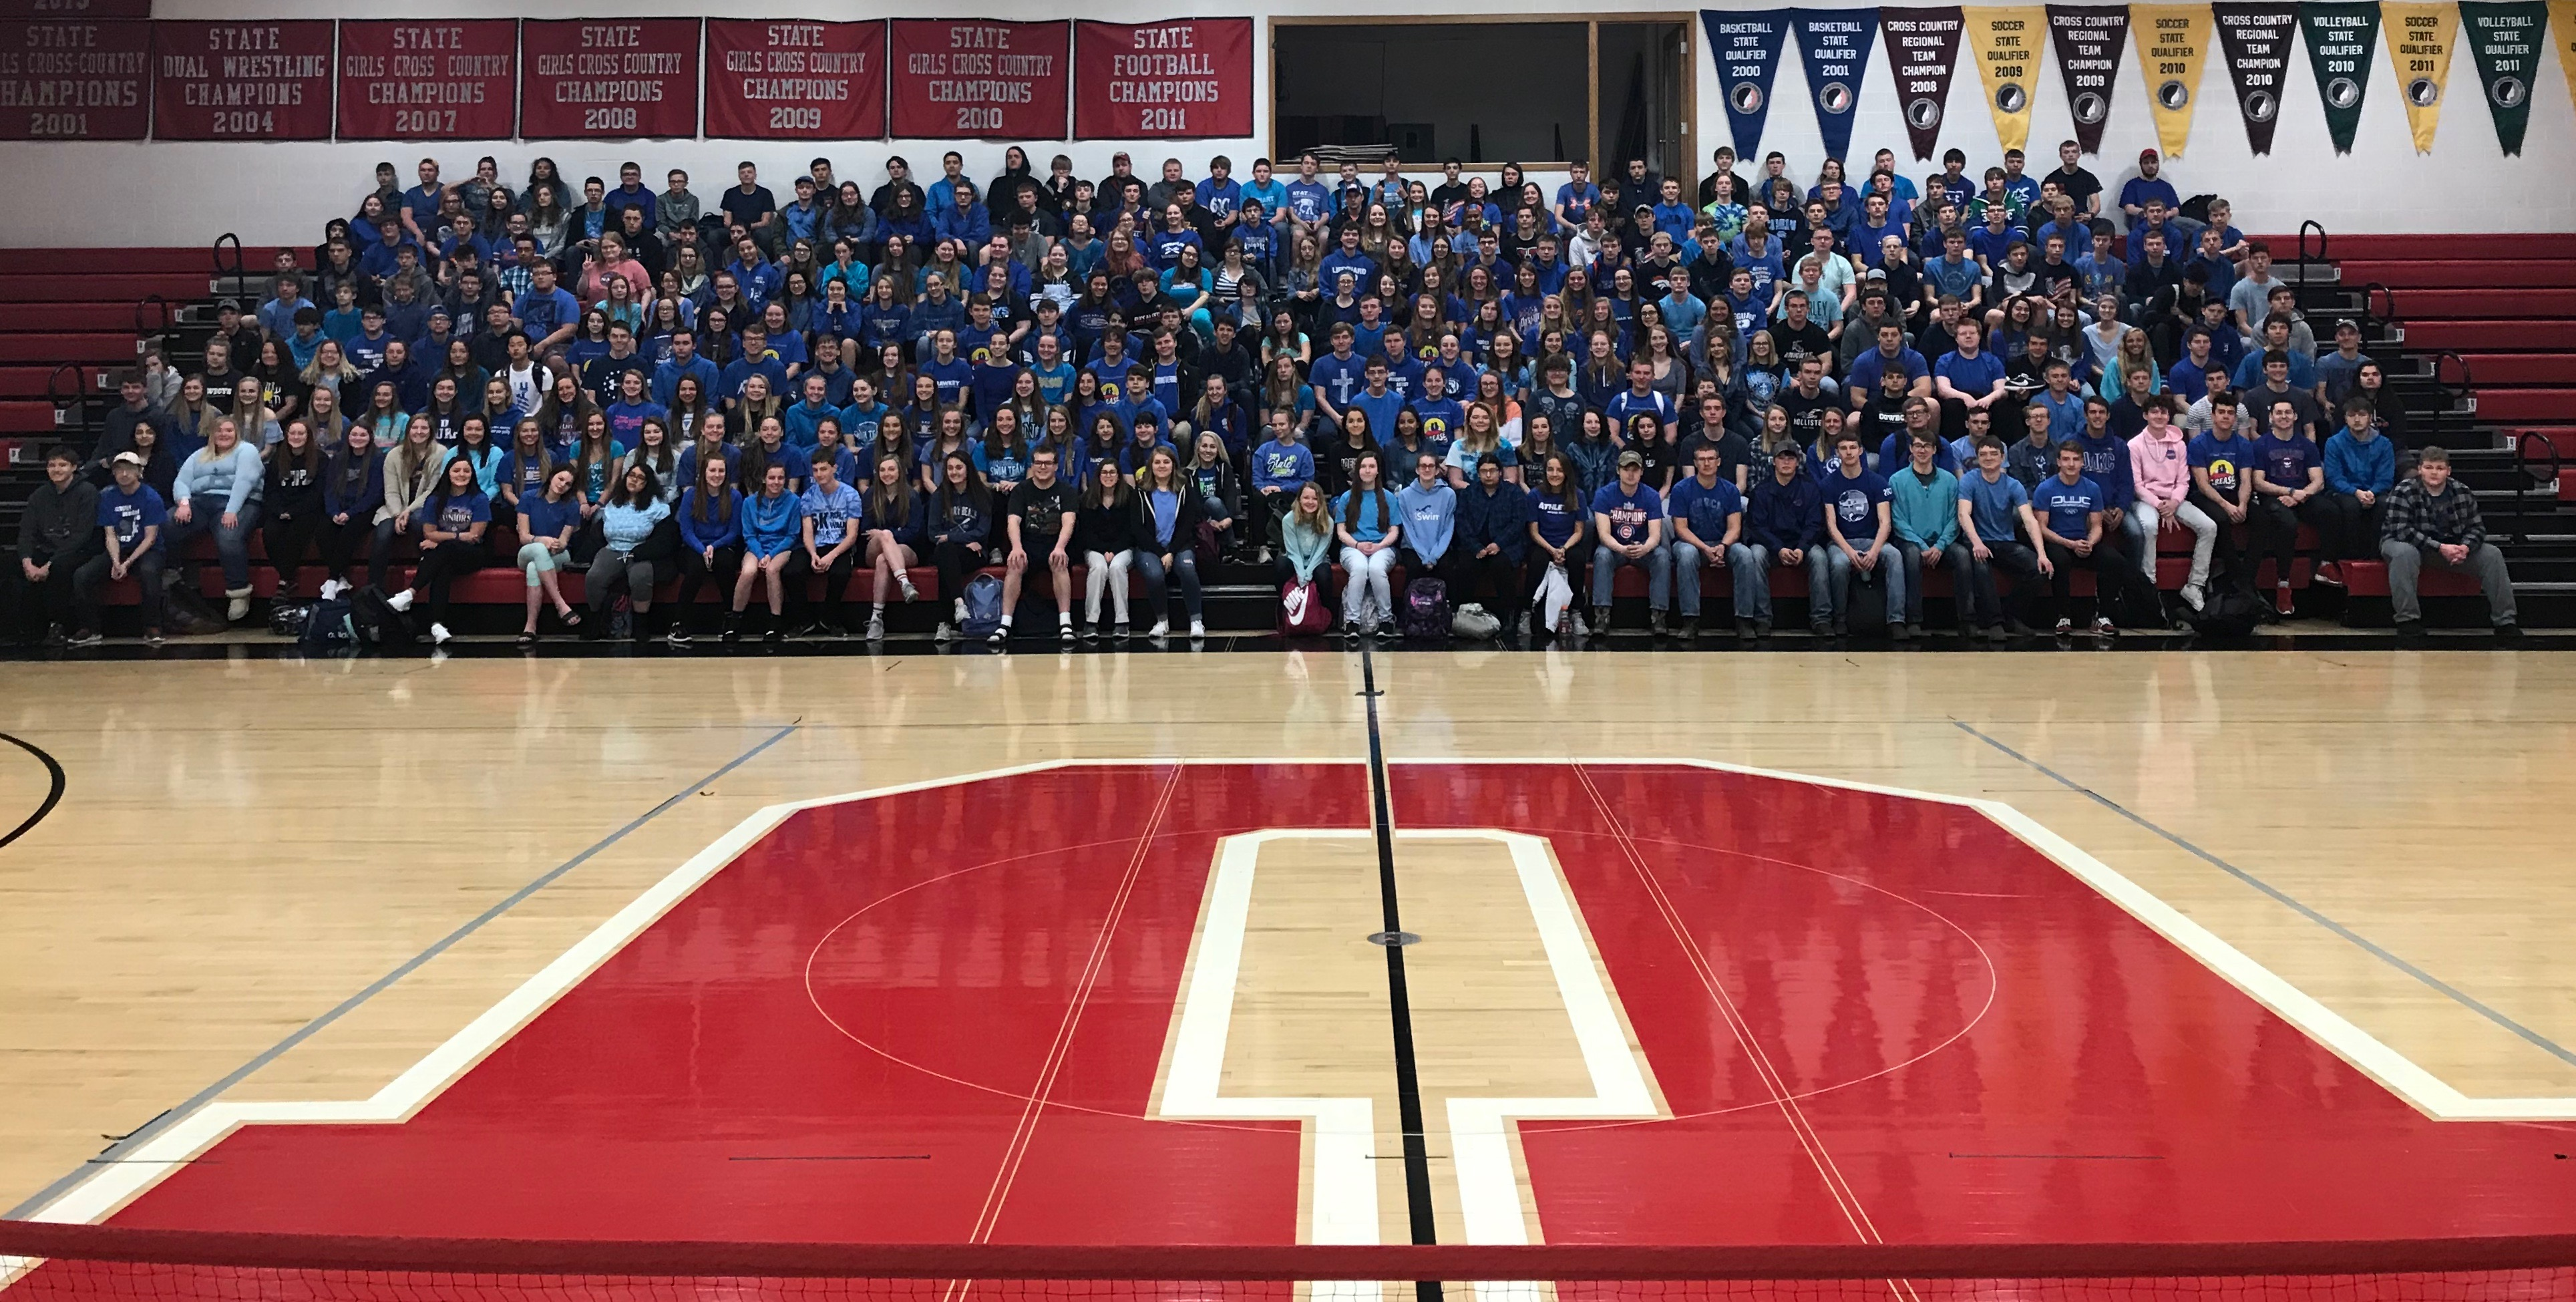 group photo of UHS sudents wearing blue